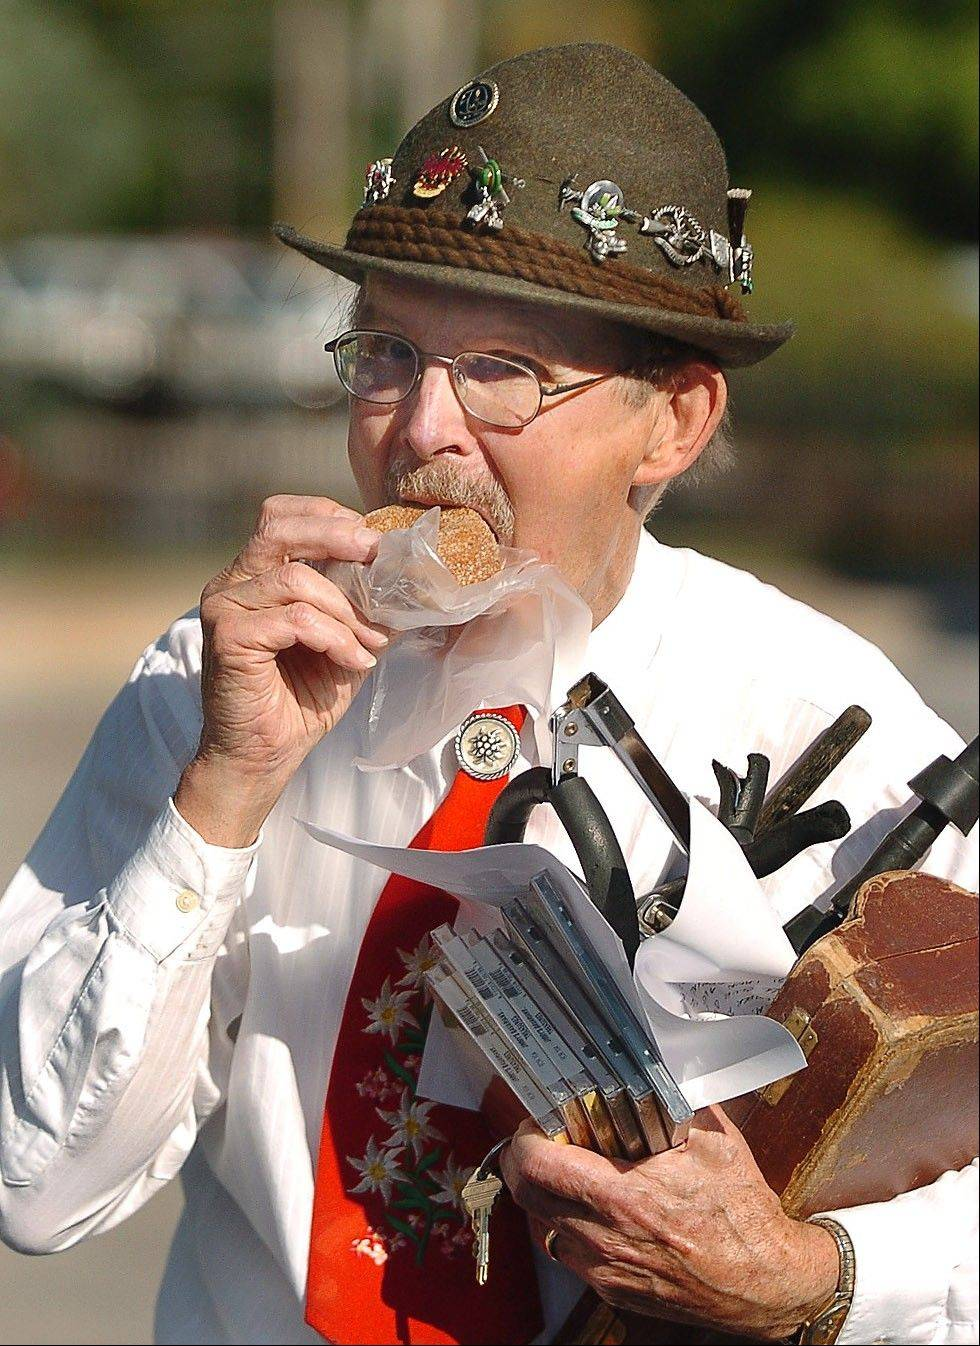 Jimmy Bestman, of the oompah band Jimmy's Bavarians, takes a break at last year's festival to try a cider spice doughnut. The band is back this year.